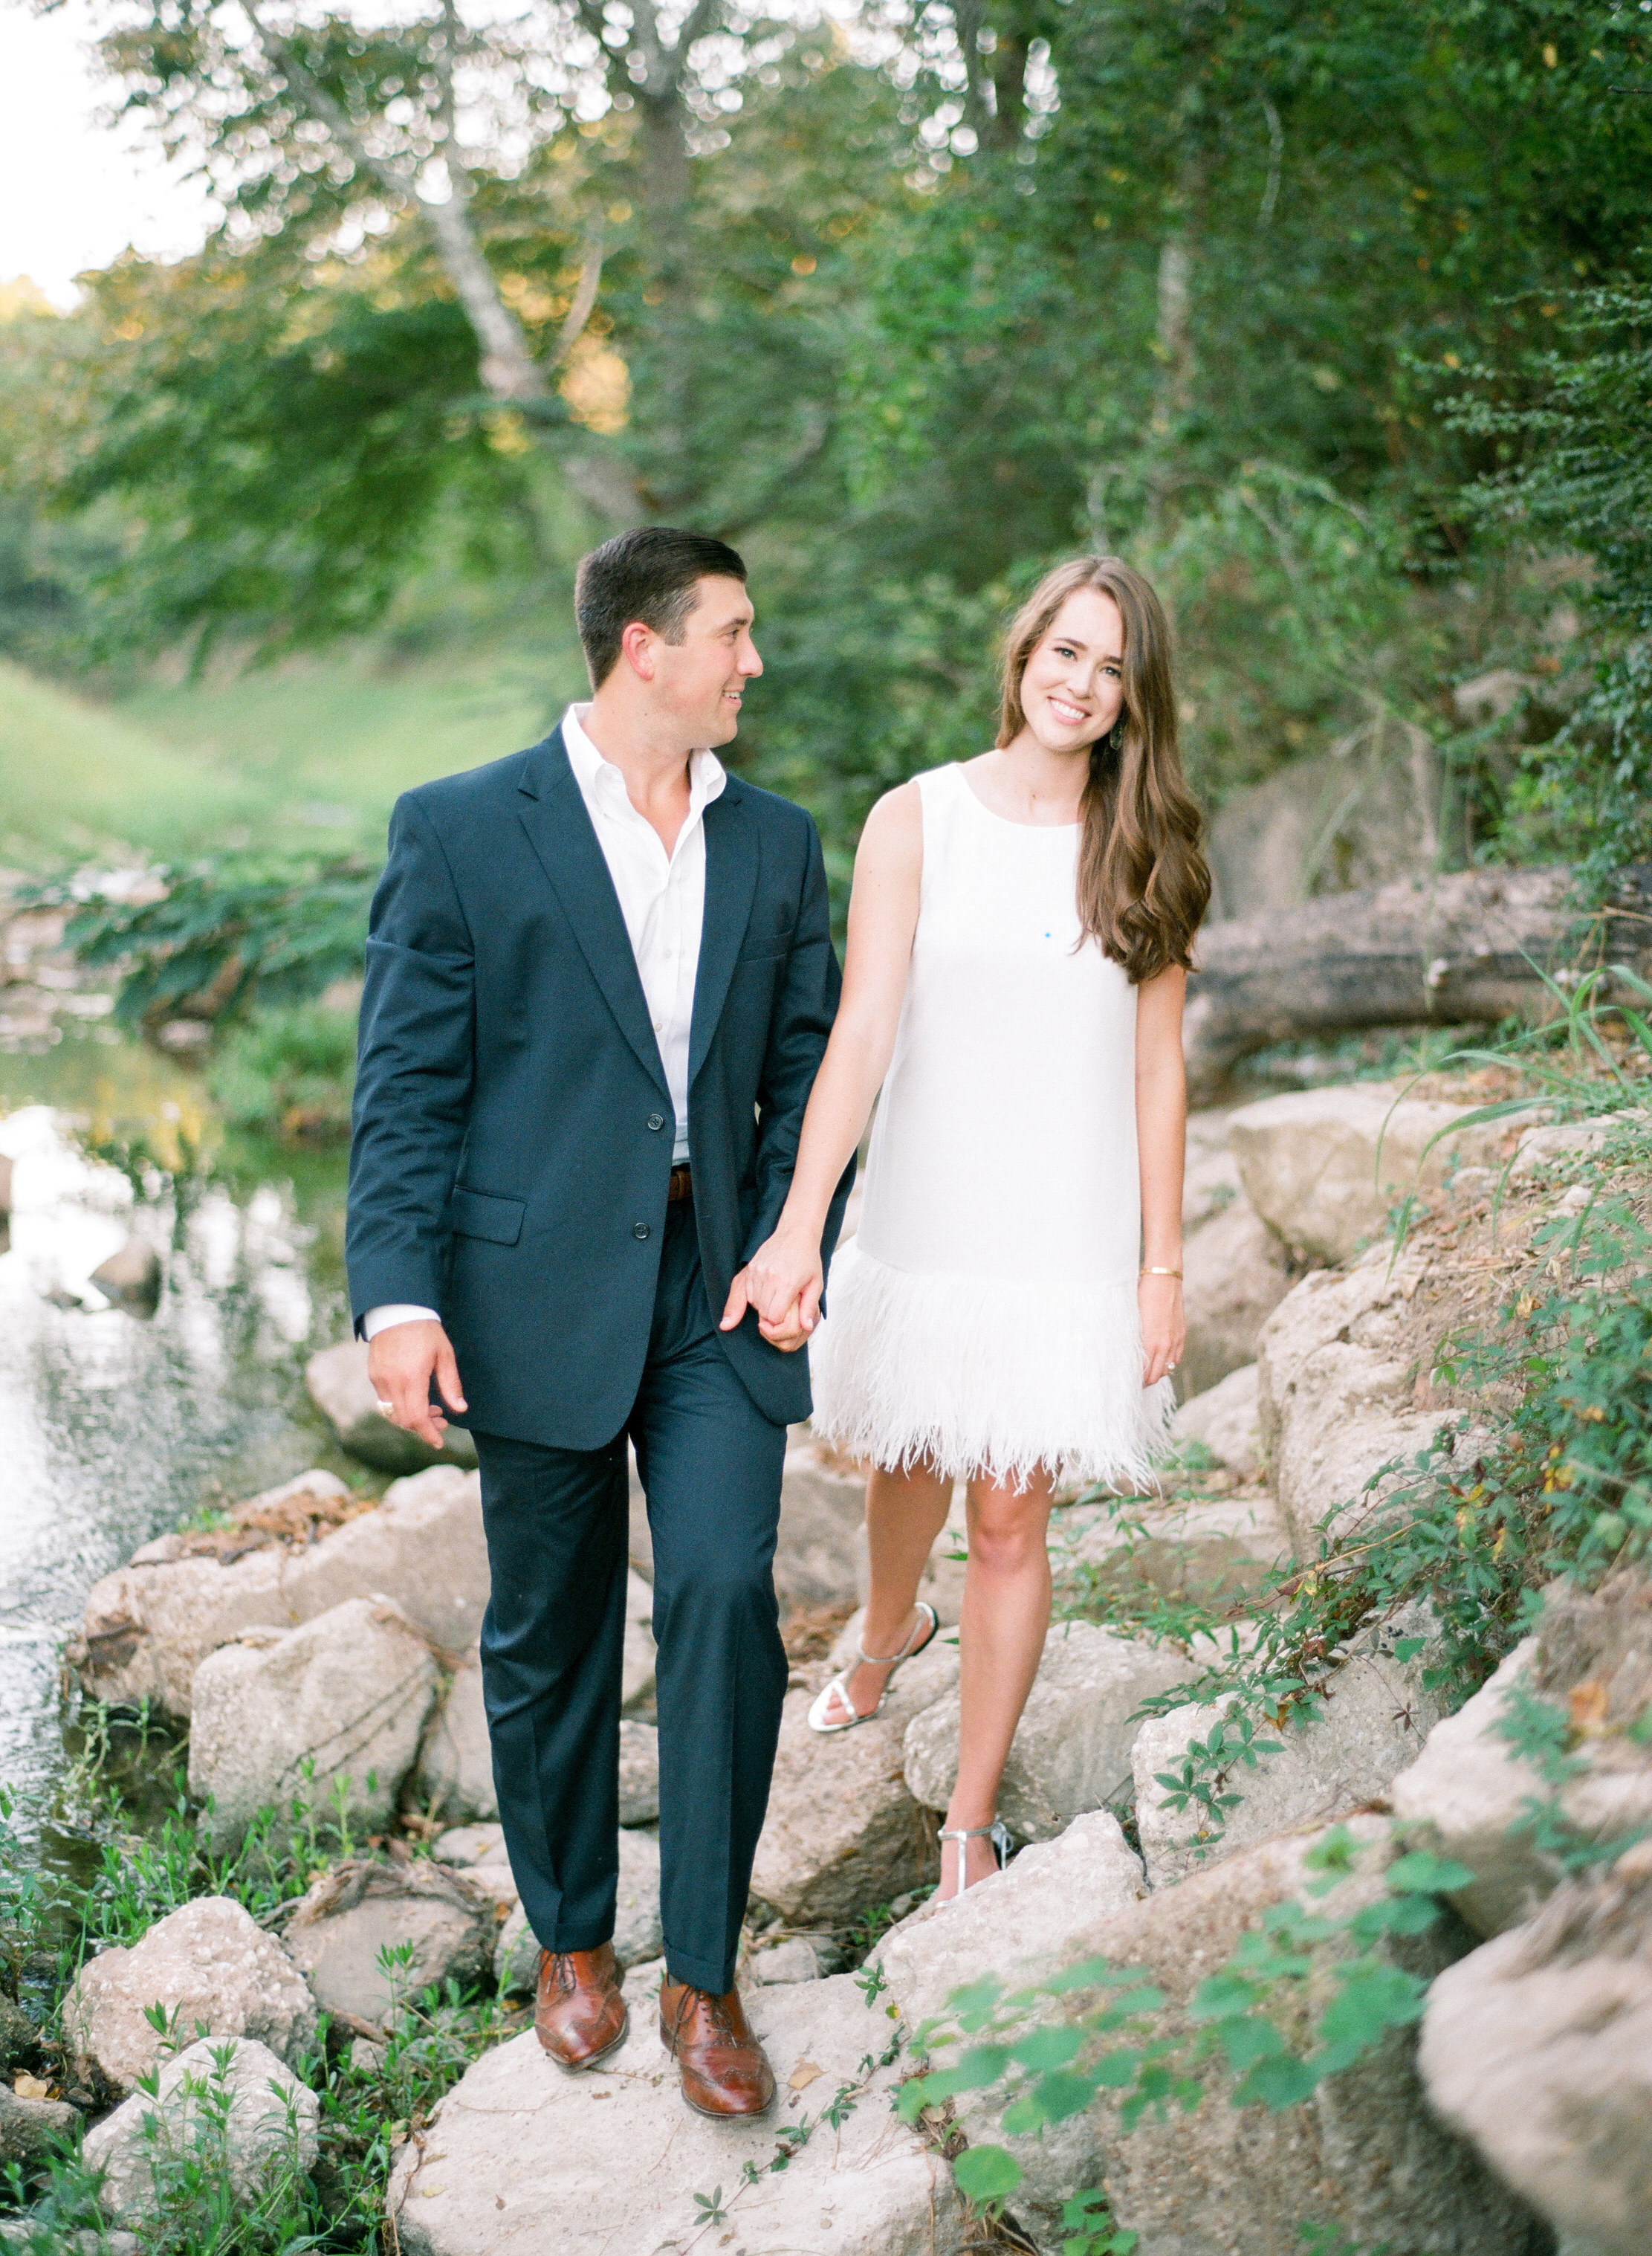 Dana-Fernandez-Photography-Houston-Engagement-Photographer-Film-11.jpg